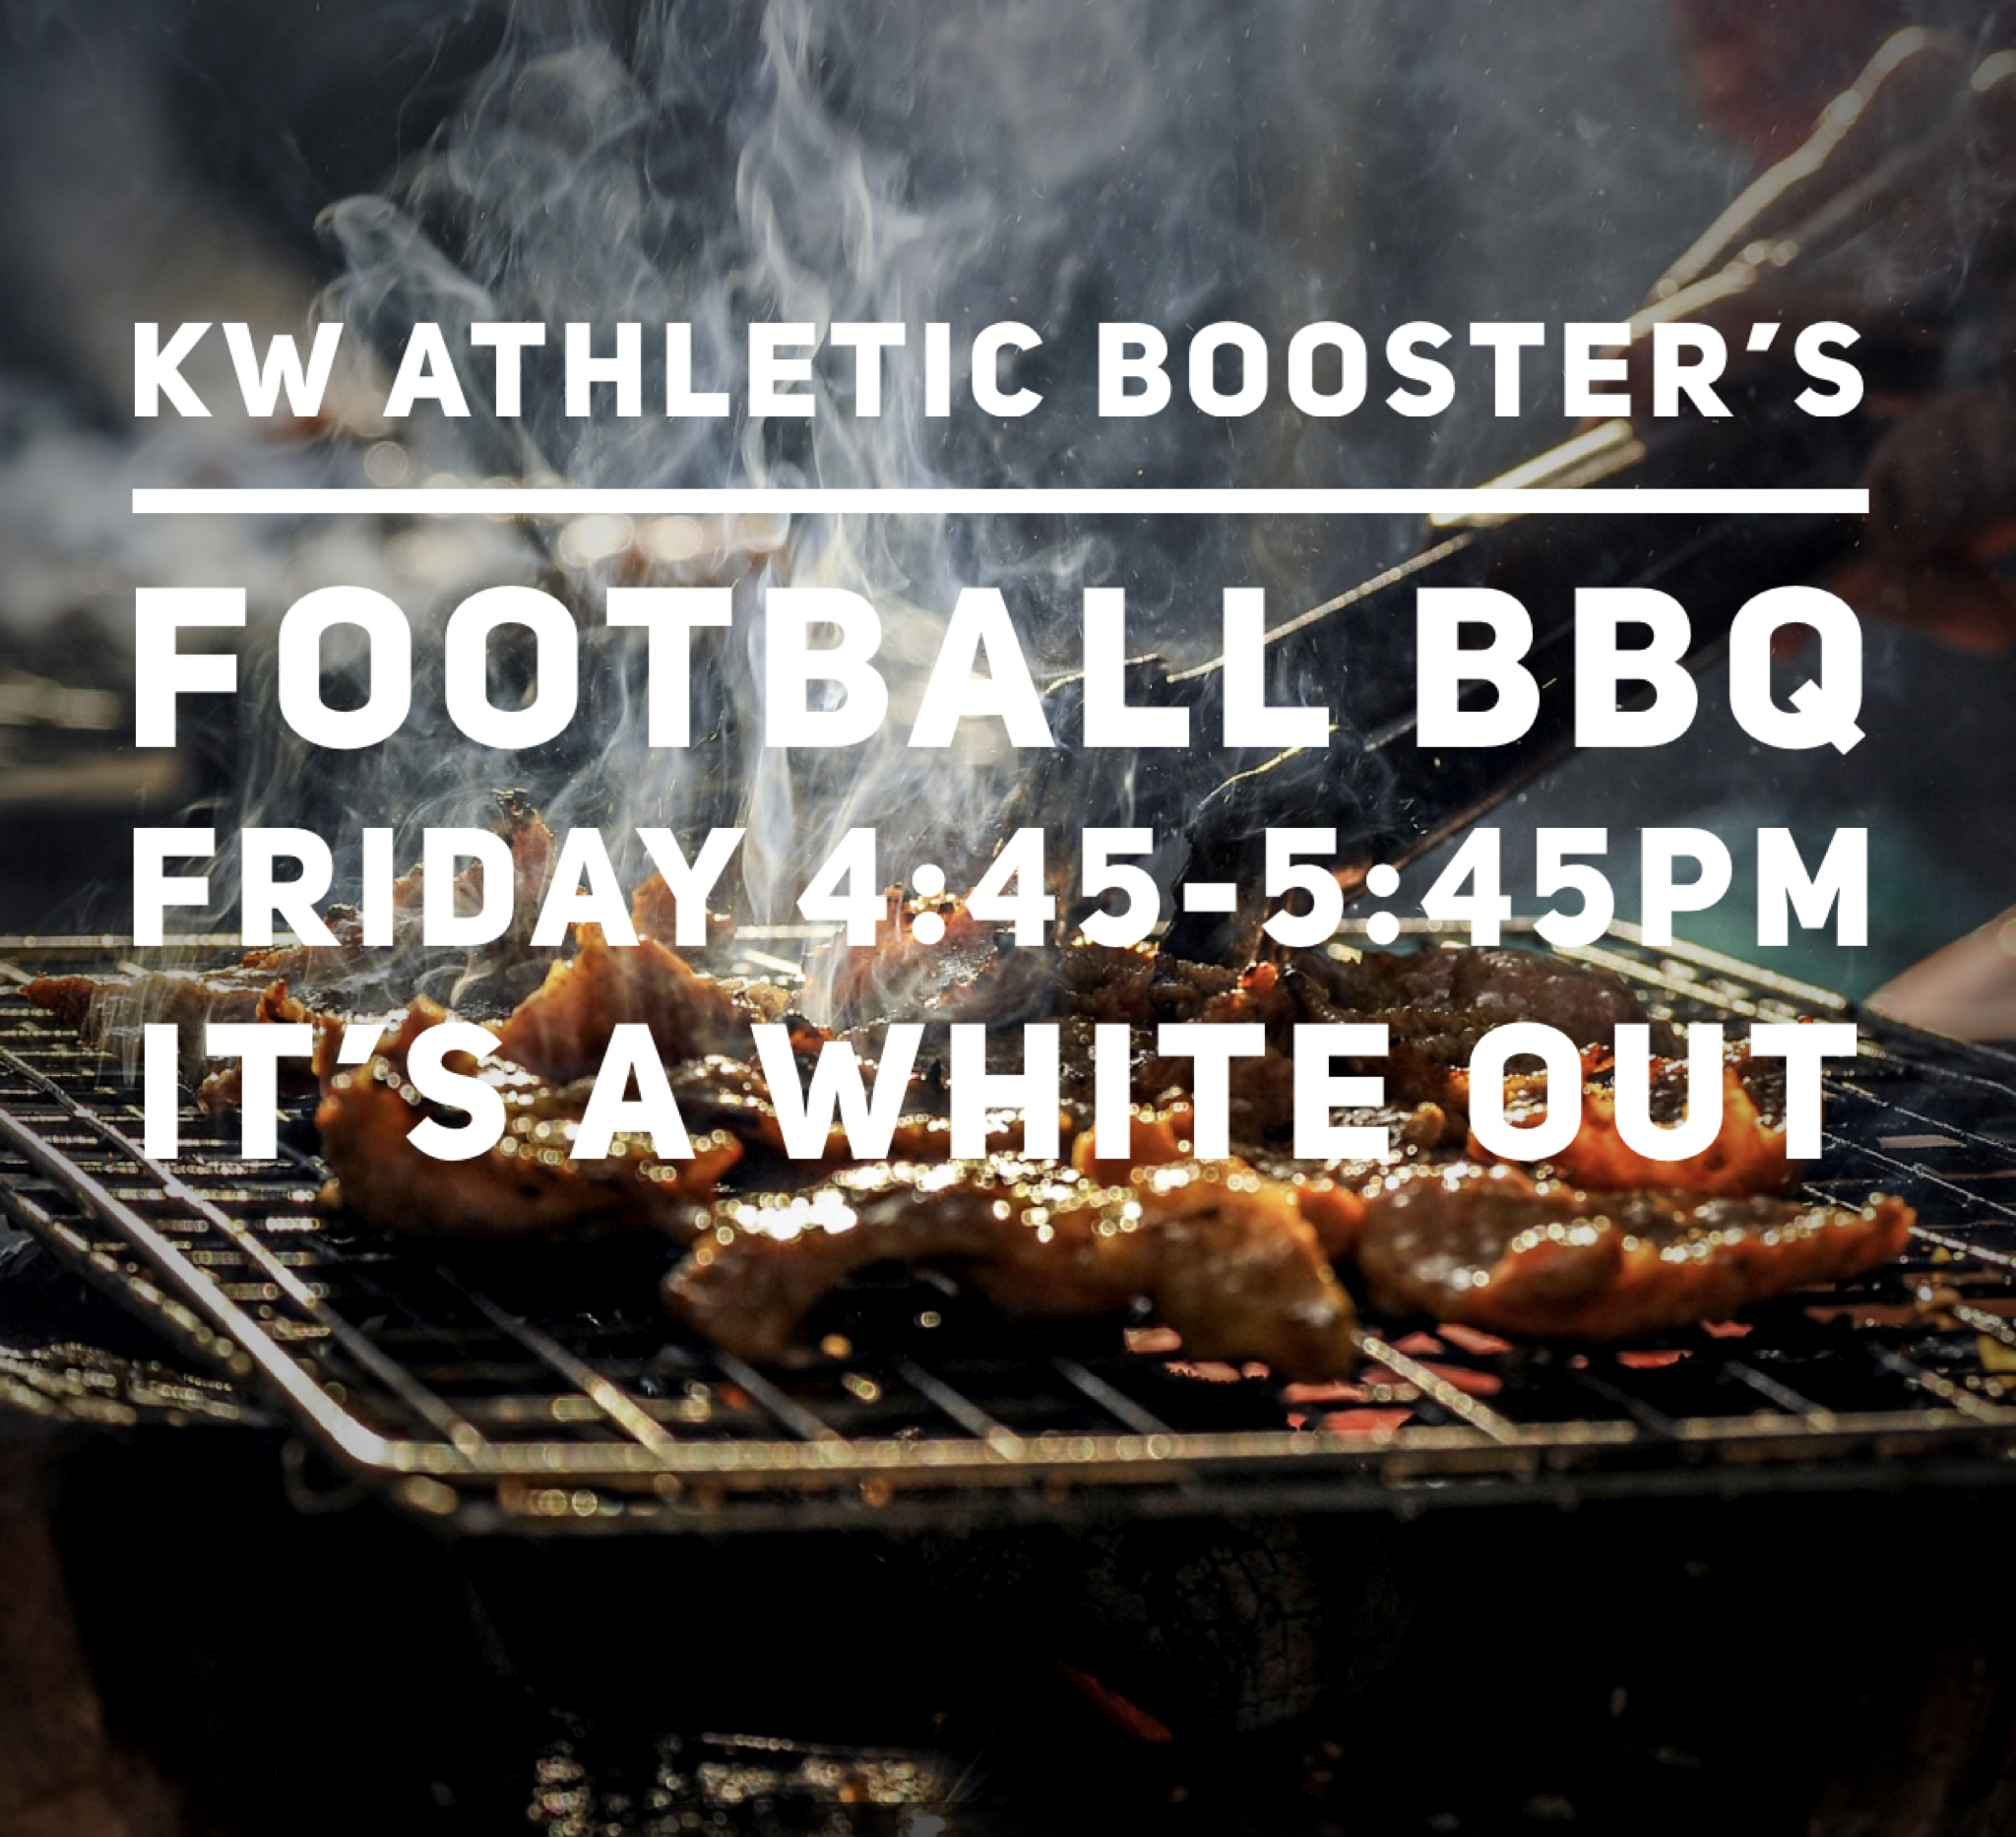 King's Way Athletic Booster's Kick Off BBQ FRIDAY